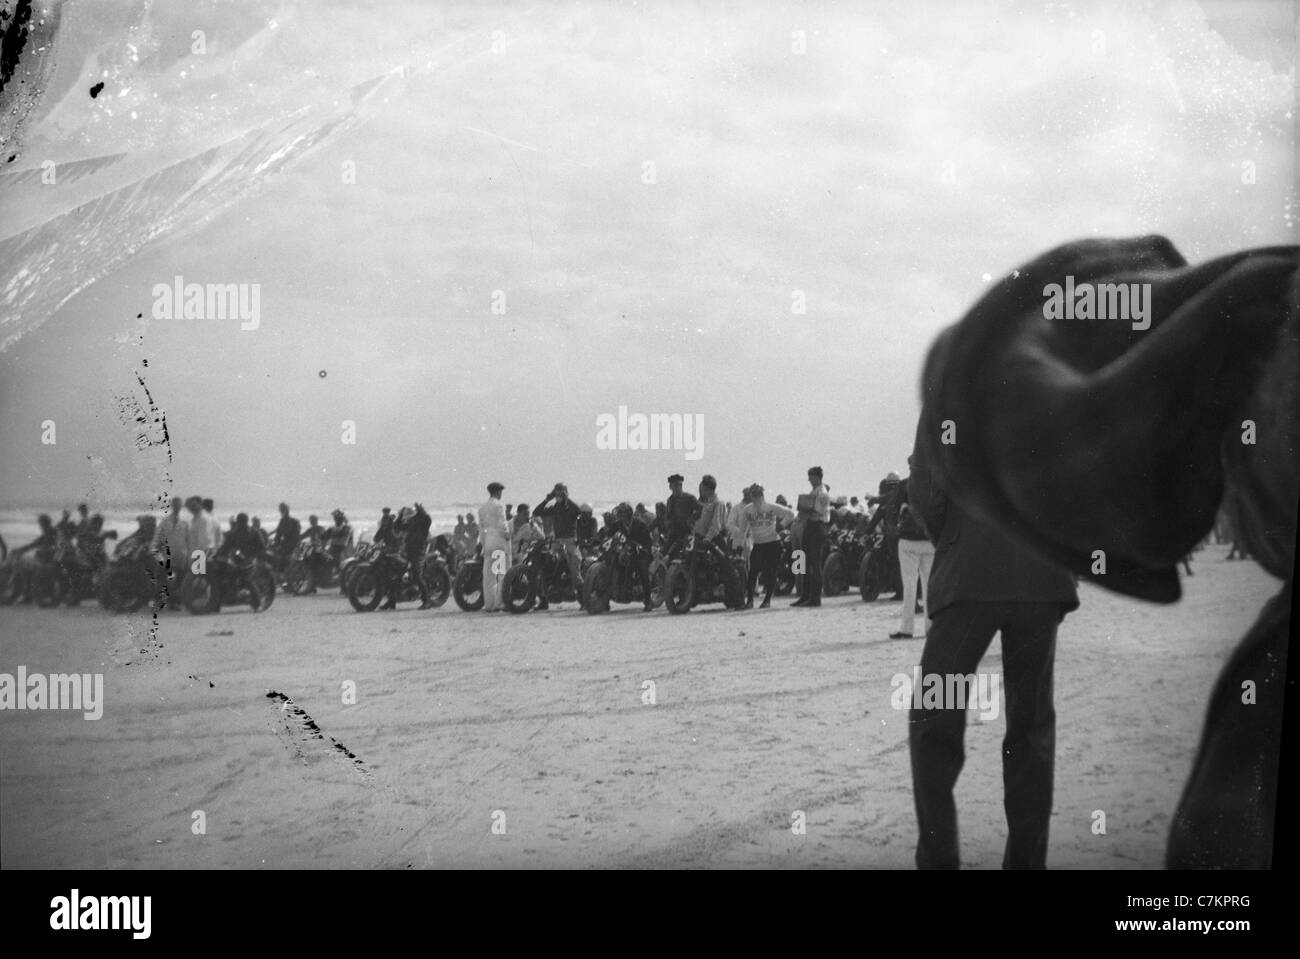 1930s motorcycle race Americana racing row motorcycles black and white horizontal - Stock Image